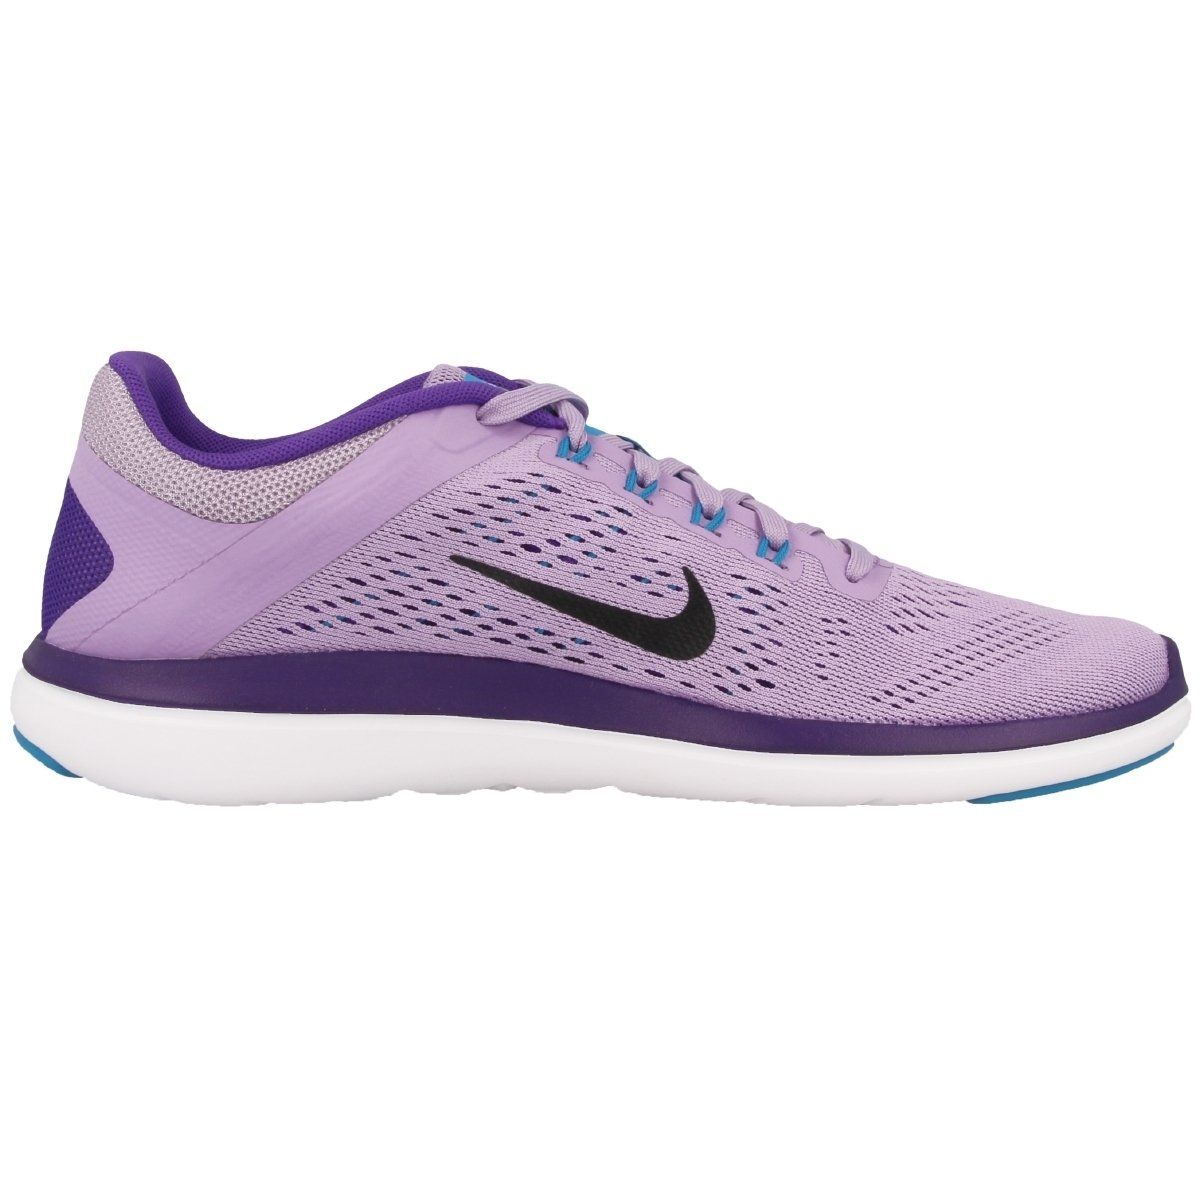 44f3e67ea5dd0e ... Nike Lady In-Season TR Fitness Fitness Fitness Cross-Training Shoes  B0027969XO Road Running ...